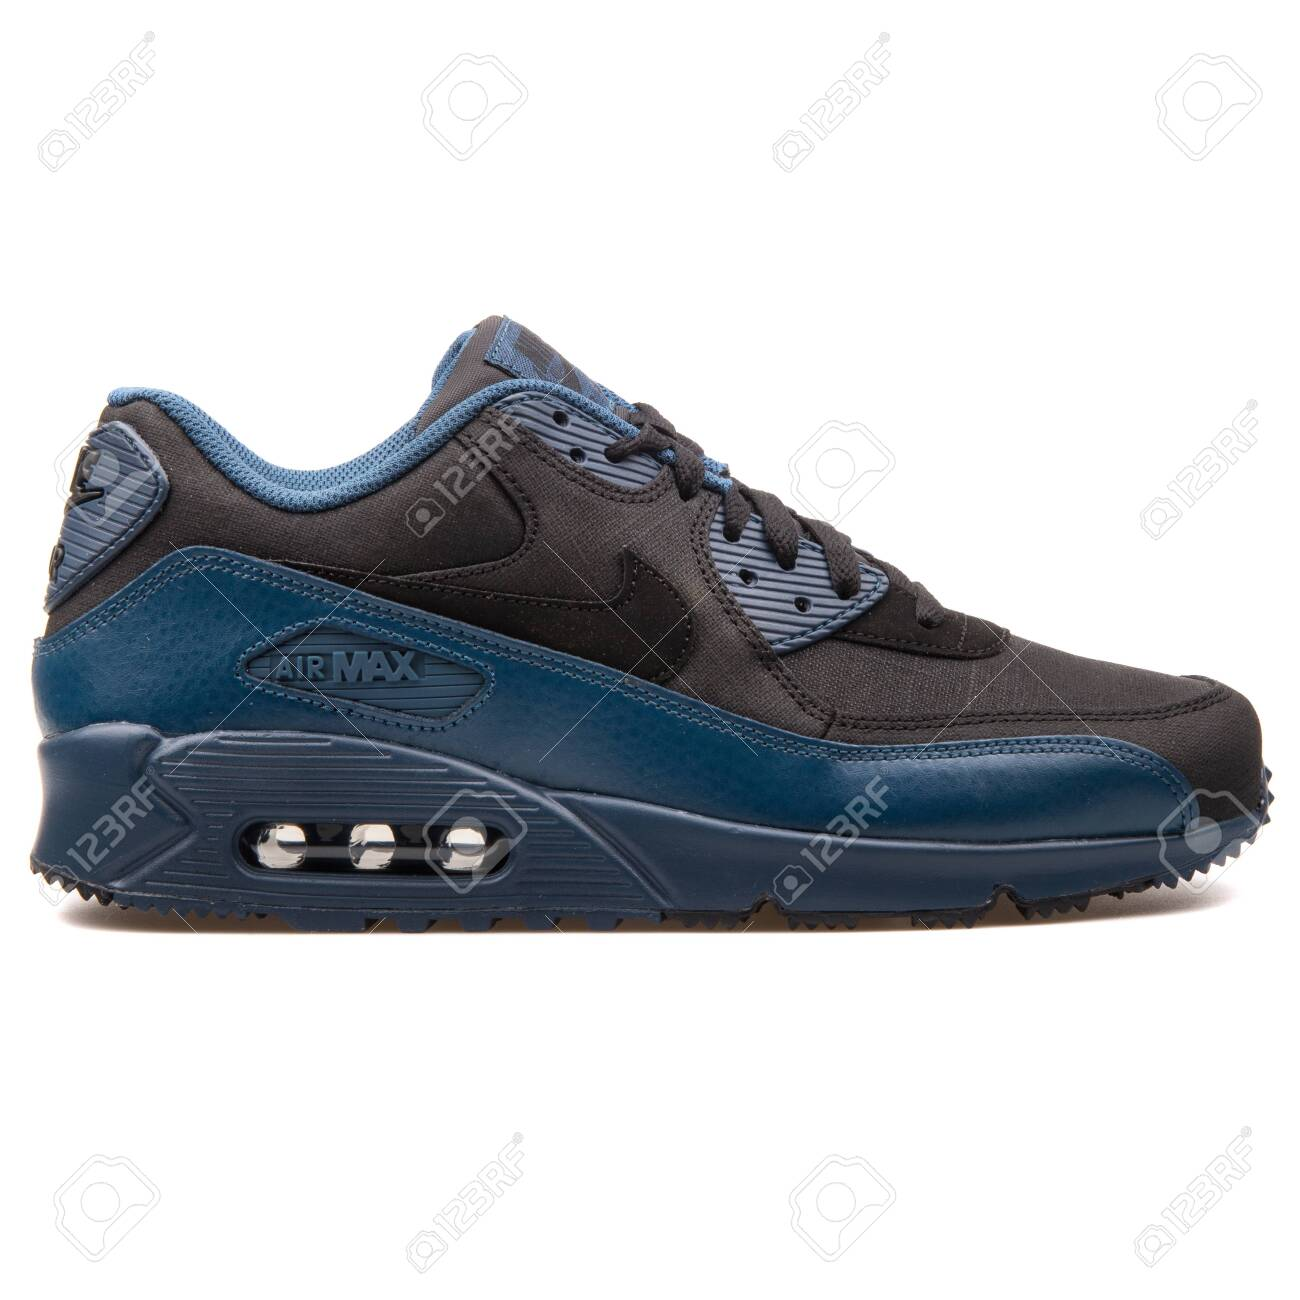 Archive | Nike Air Max 90 Winter Premium |